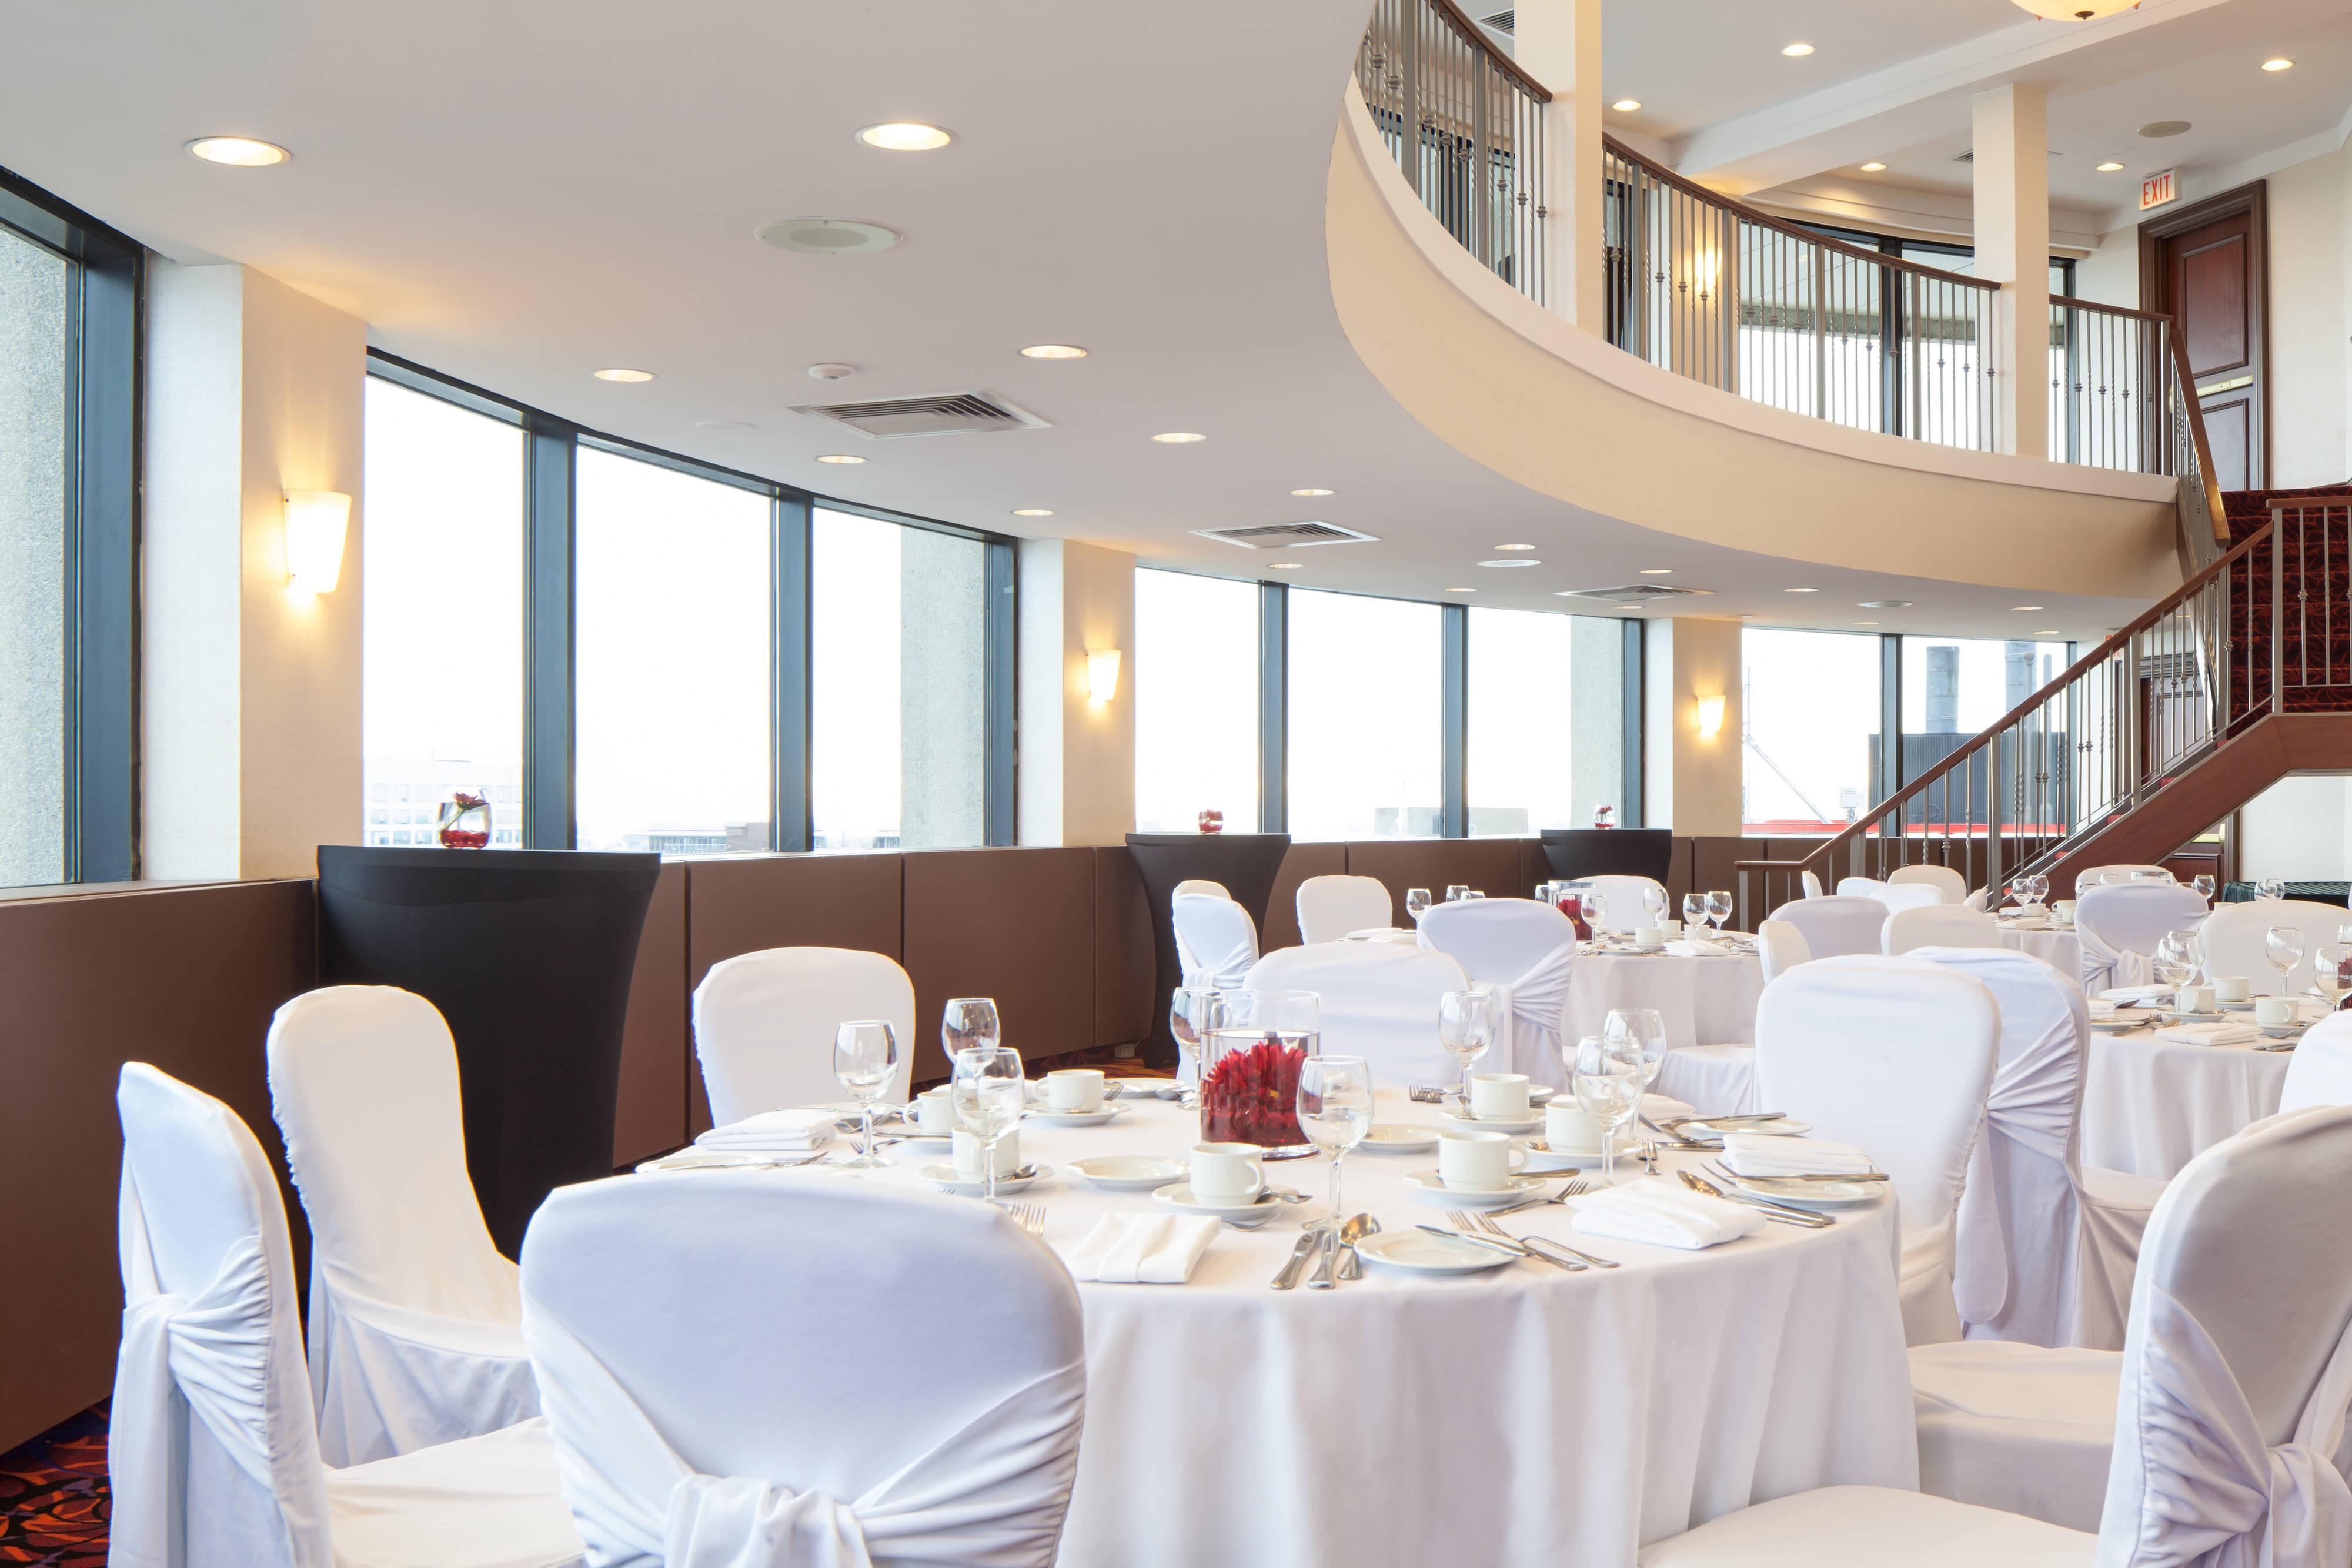 Ottawa hotel wedding venues